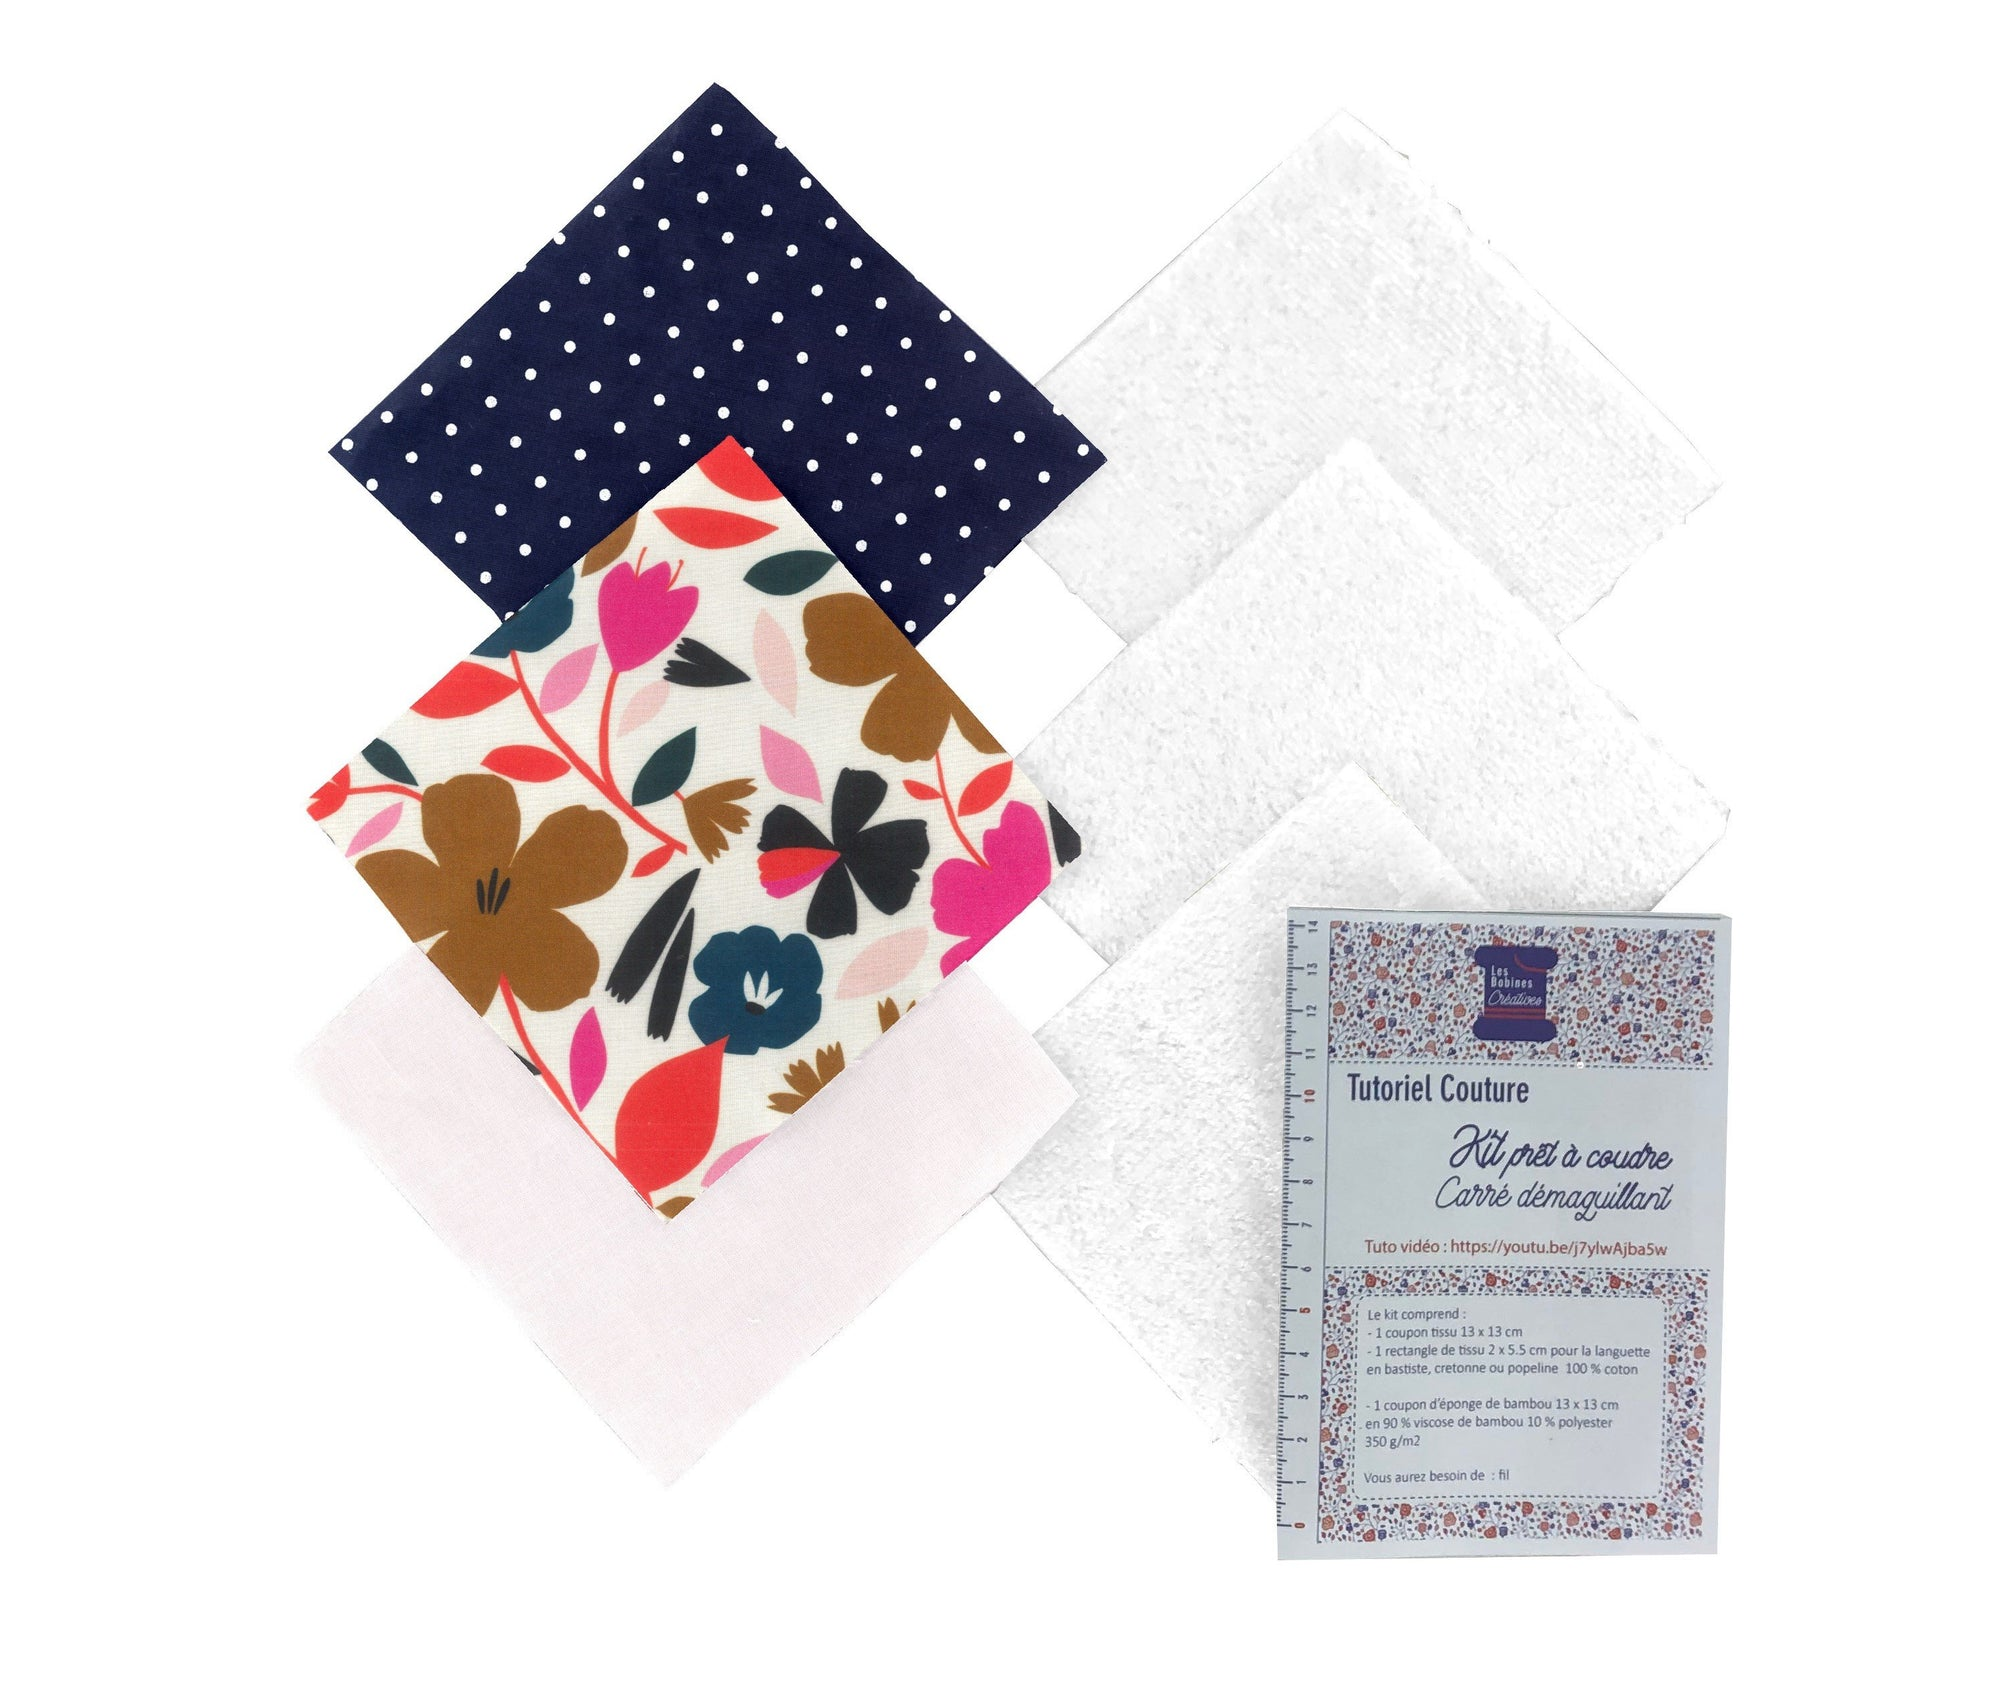 Carré démaquillant lot de 3 : Champ floral - lesbobinescreatives